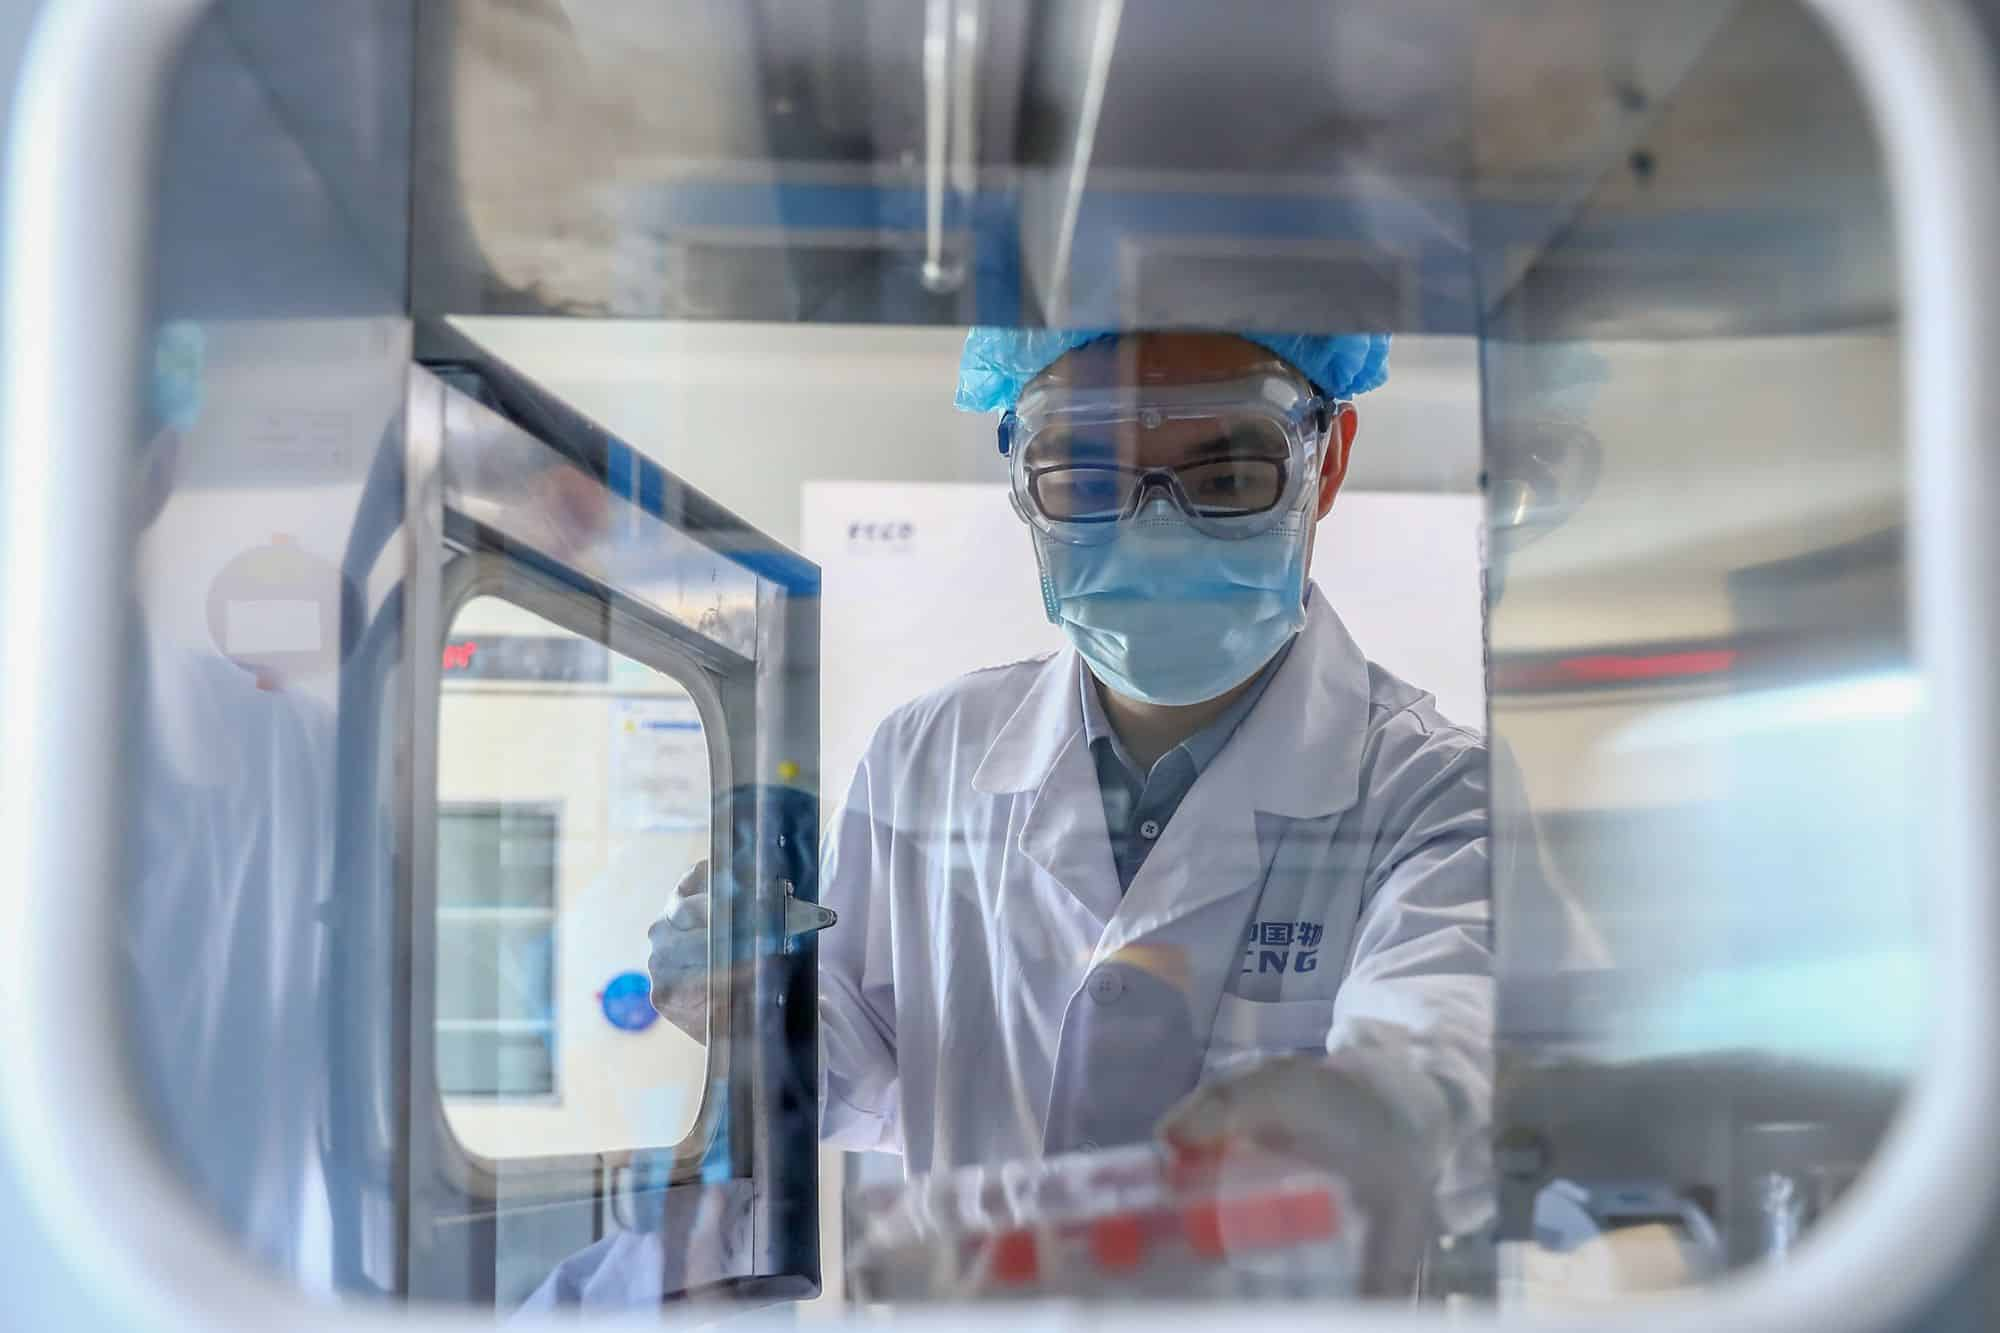 A staff member takes out samples of the COVID-19 inactivated vaccine at a vaccine production plant in Beijing, in April 2020.